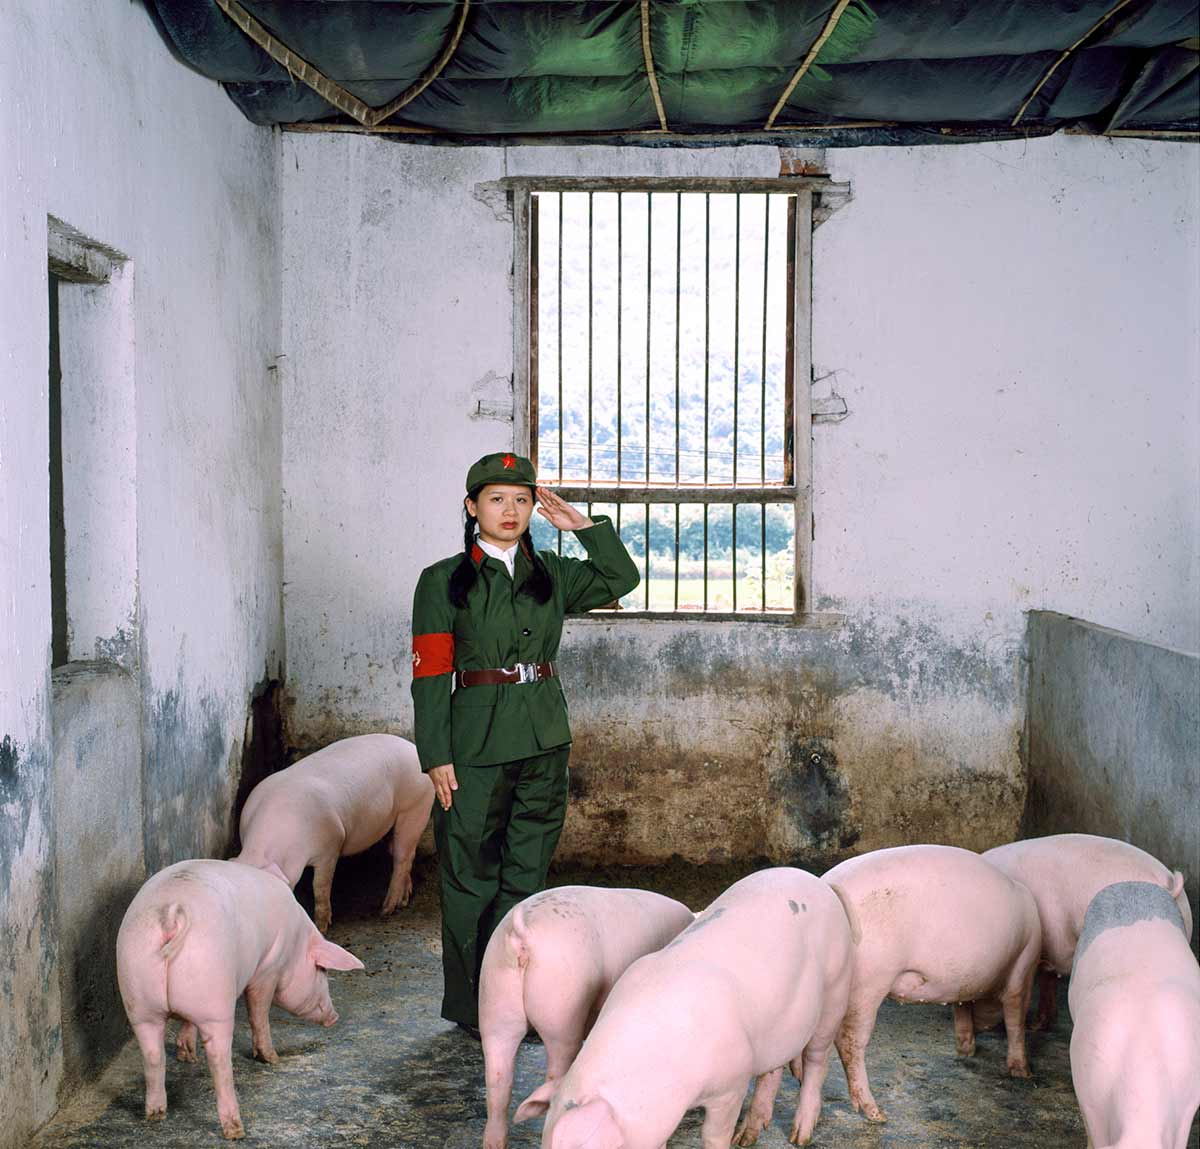 Chun Hua Catherine Dong performs the Red Guard in the Chinese Cultural Revolution. she salutes with her left hand in a pig house